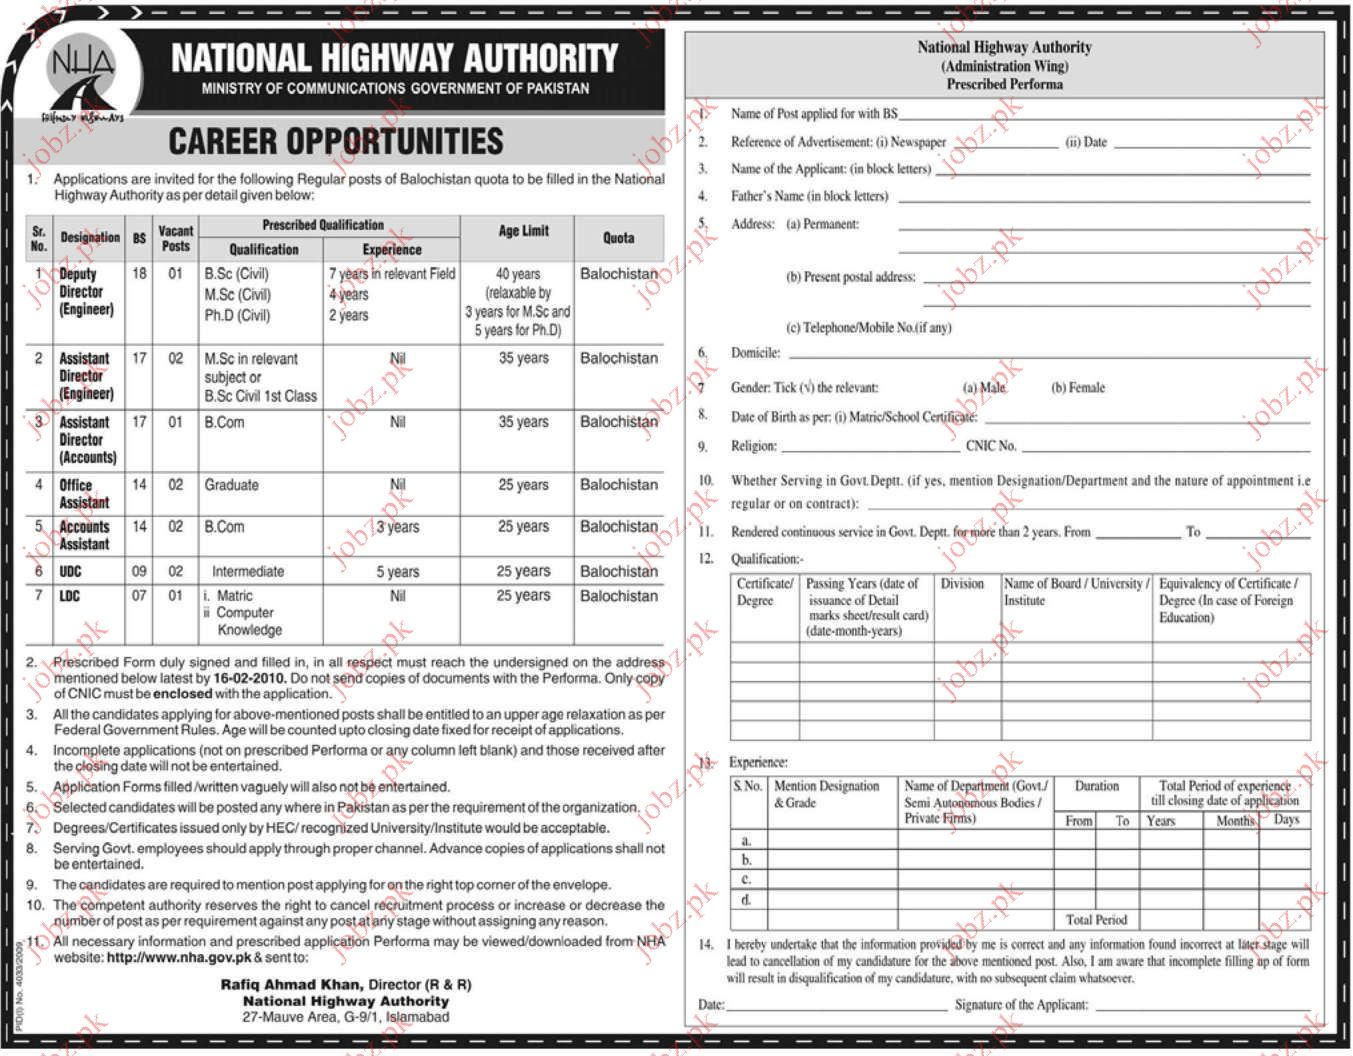 national highway authority Find national highway authority of india latest news, videos & pictures on national highway authority of india and see latest updates, news, information from ndtvcom.